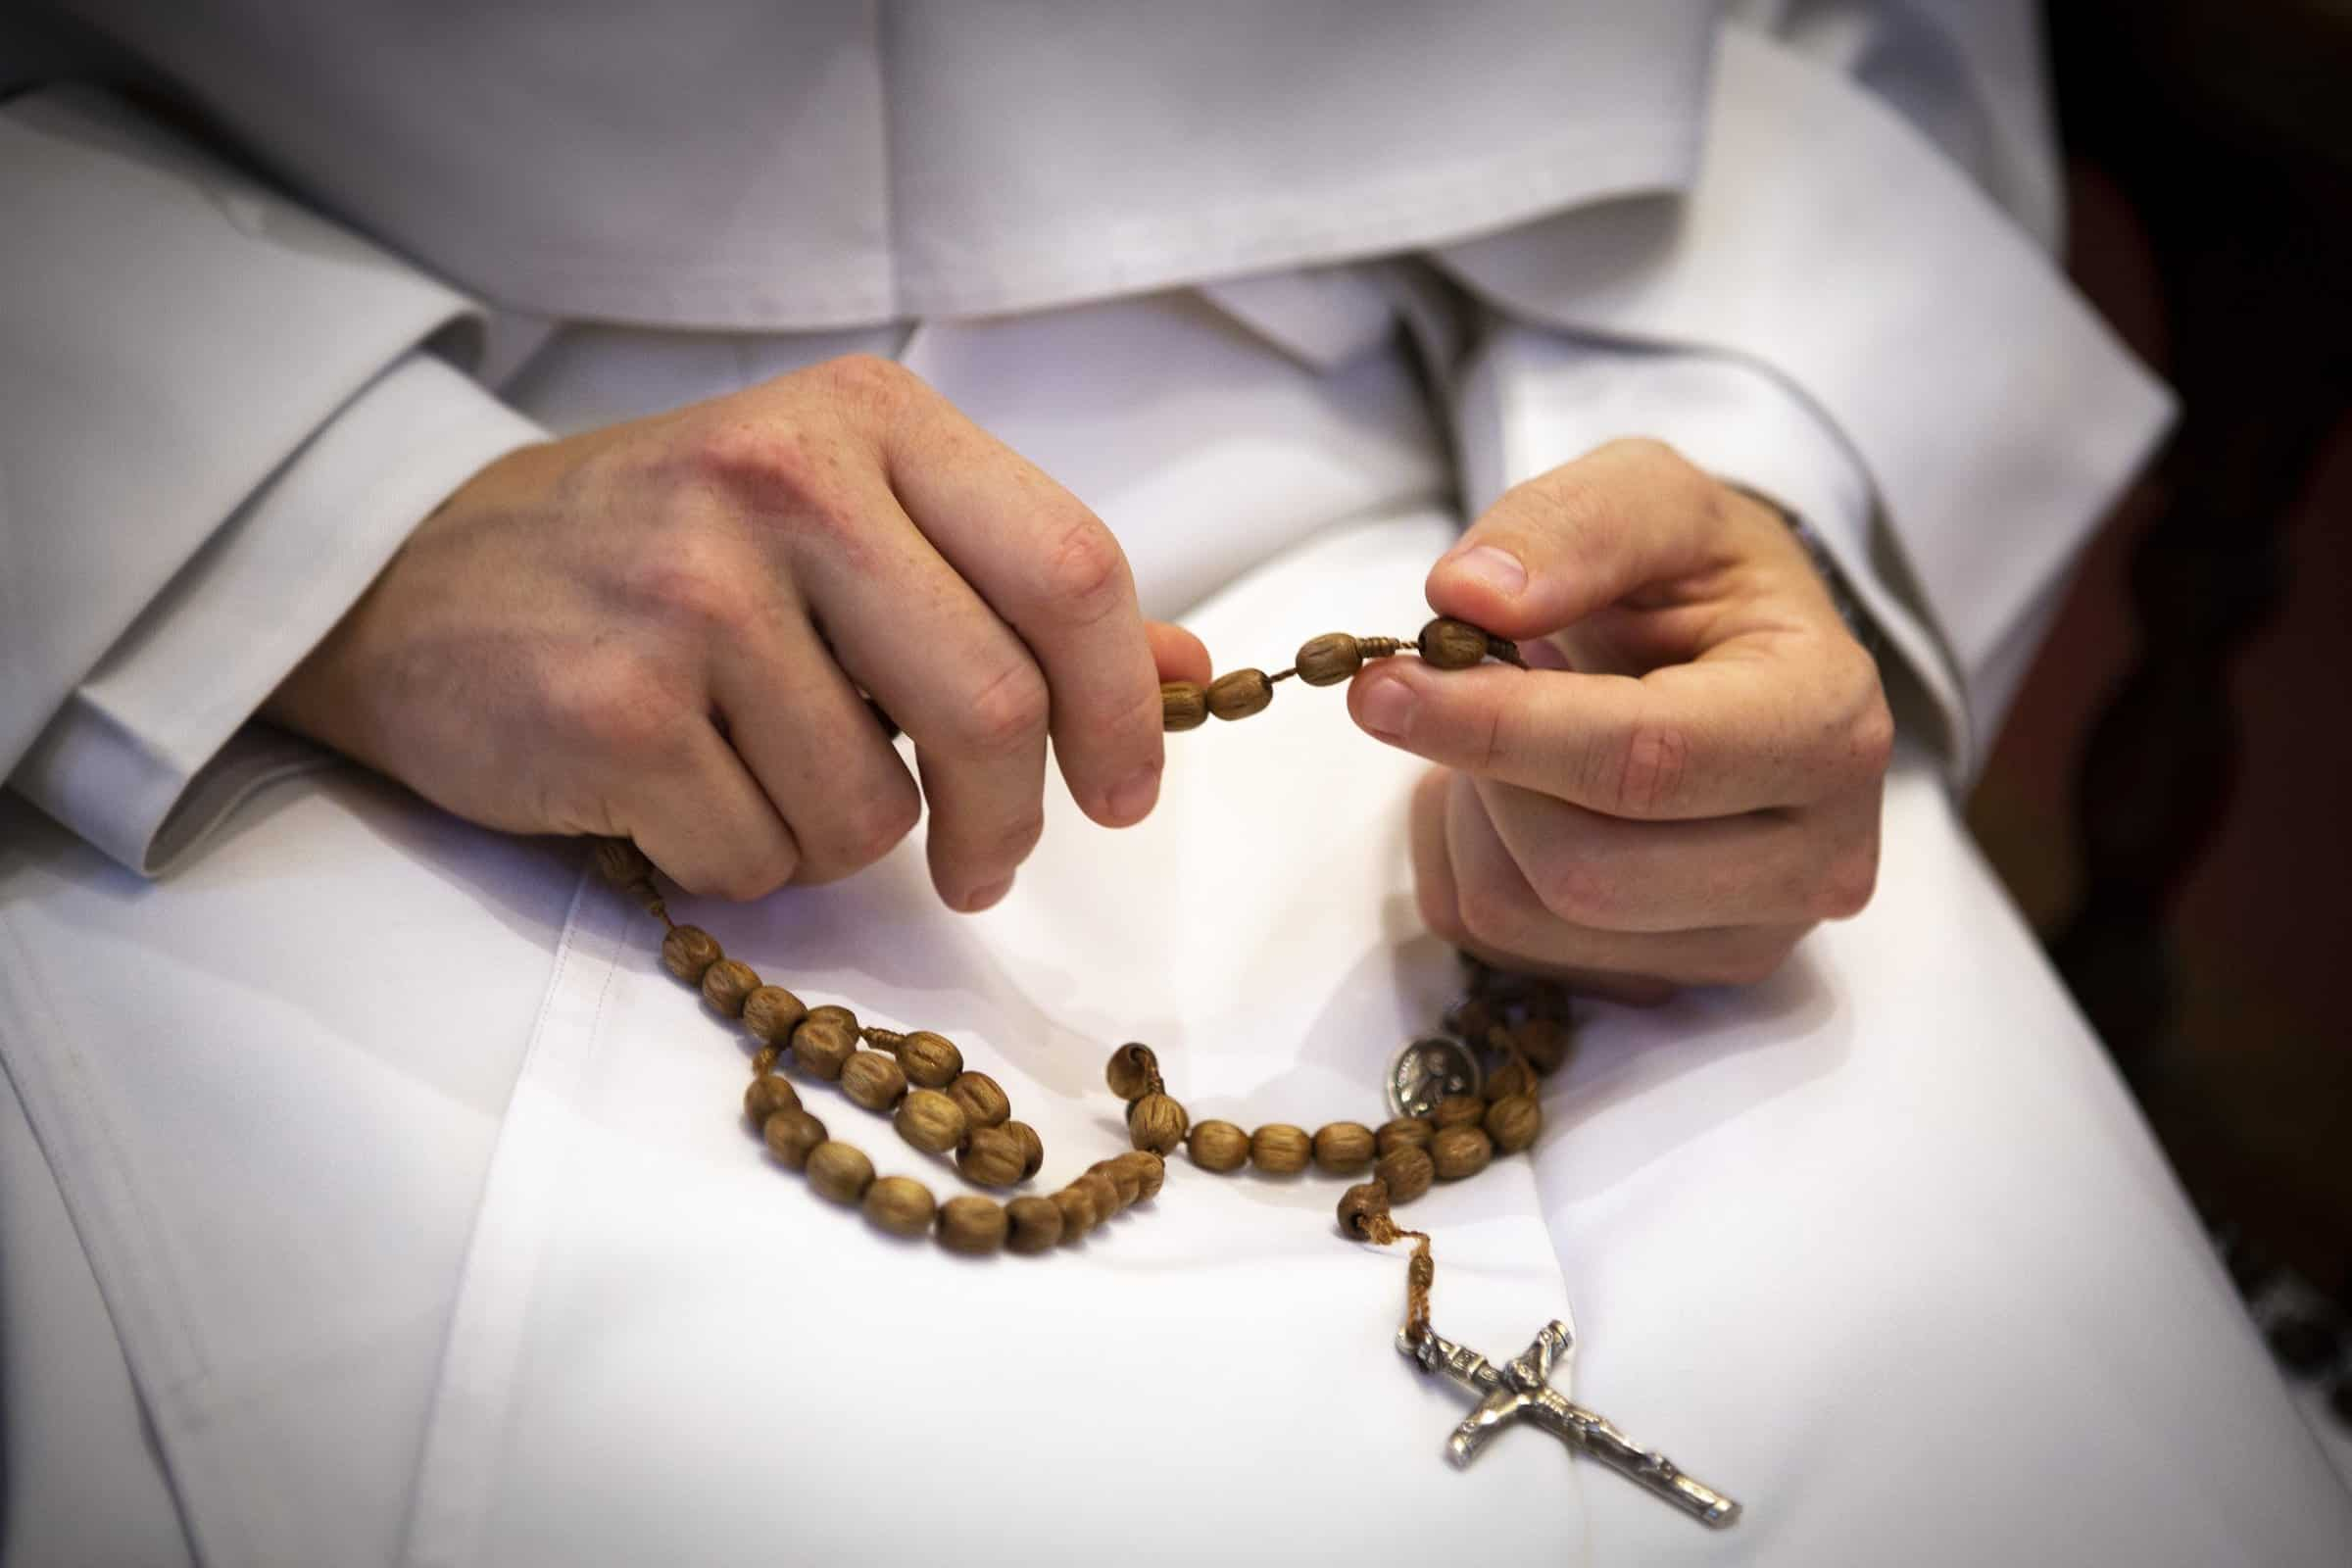 Virtual rosary Oct. 7 aims to unite Catholics in 'moment of prayer' for nation